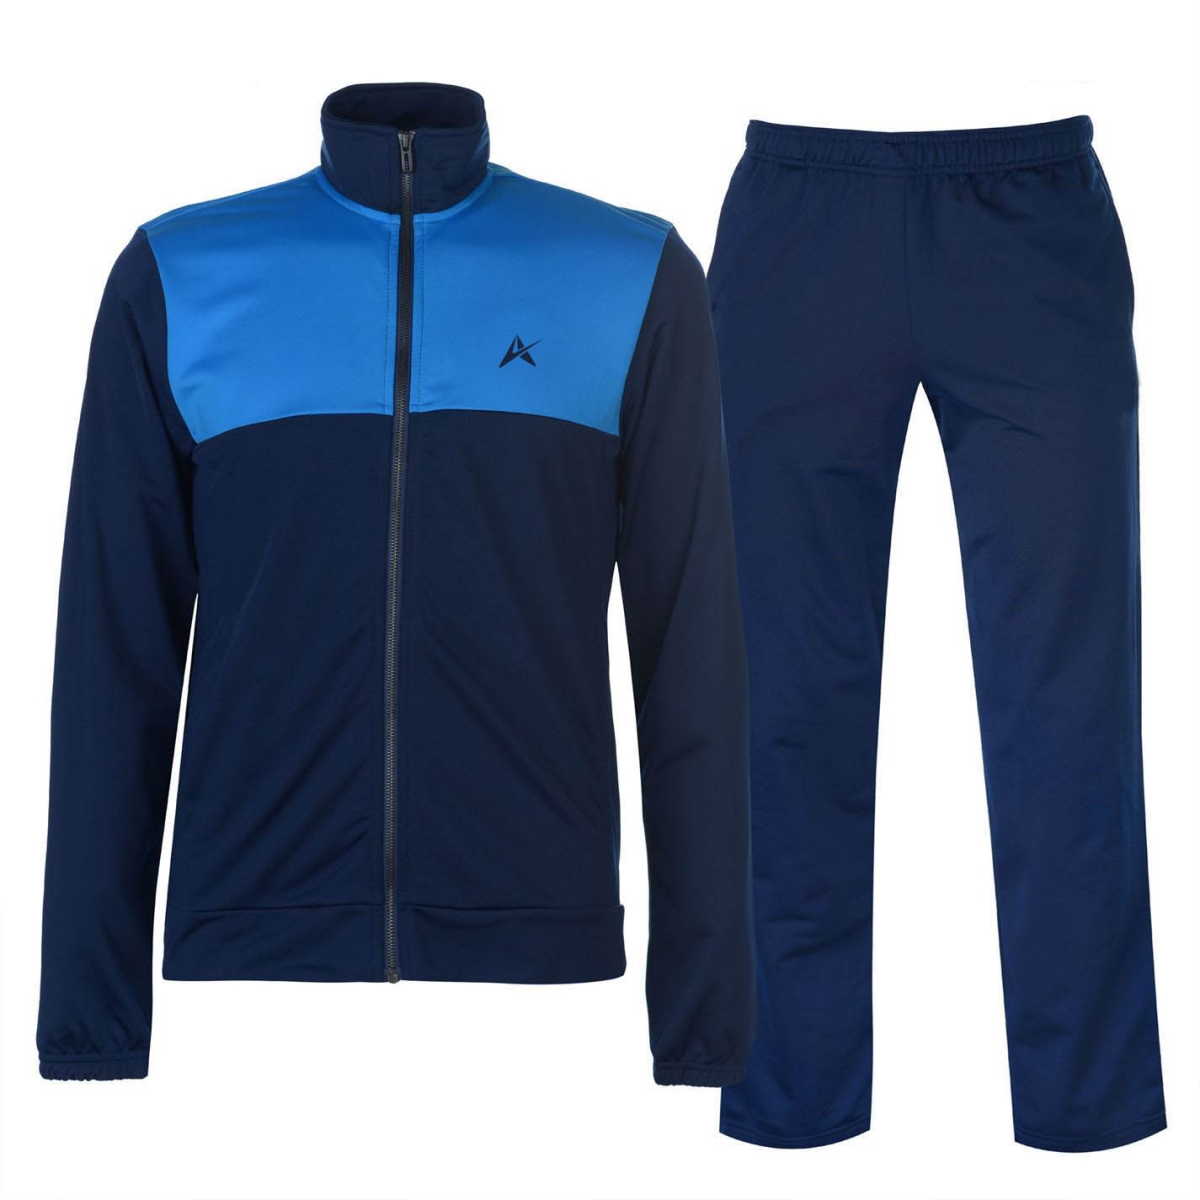 Men's Jogging Sports Suit Long Sleeve A1-506